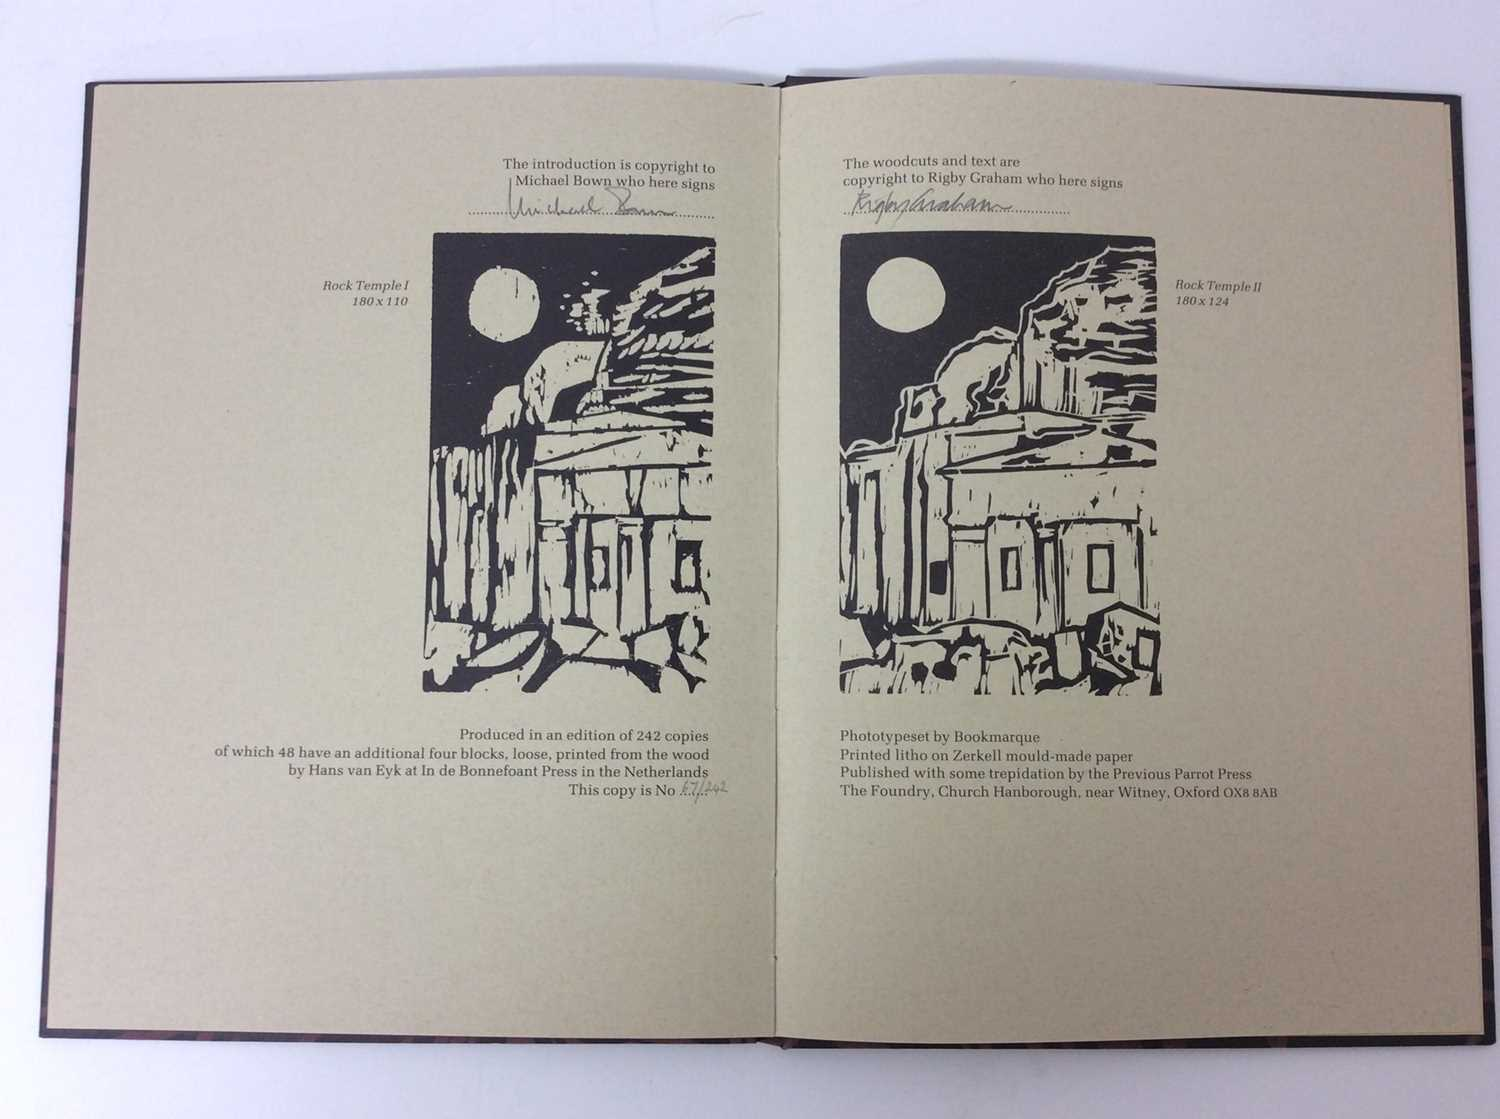 Rigby Graham, three limited edition publications - Image 10 of 13